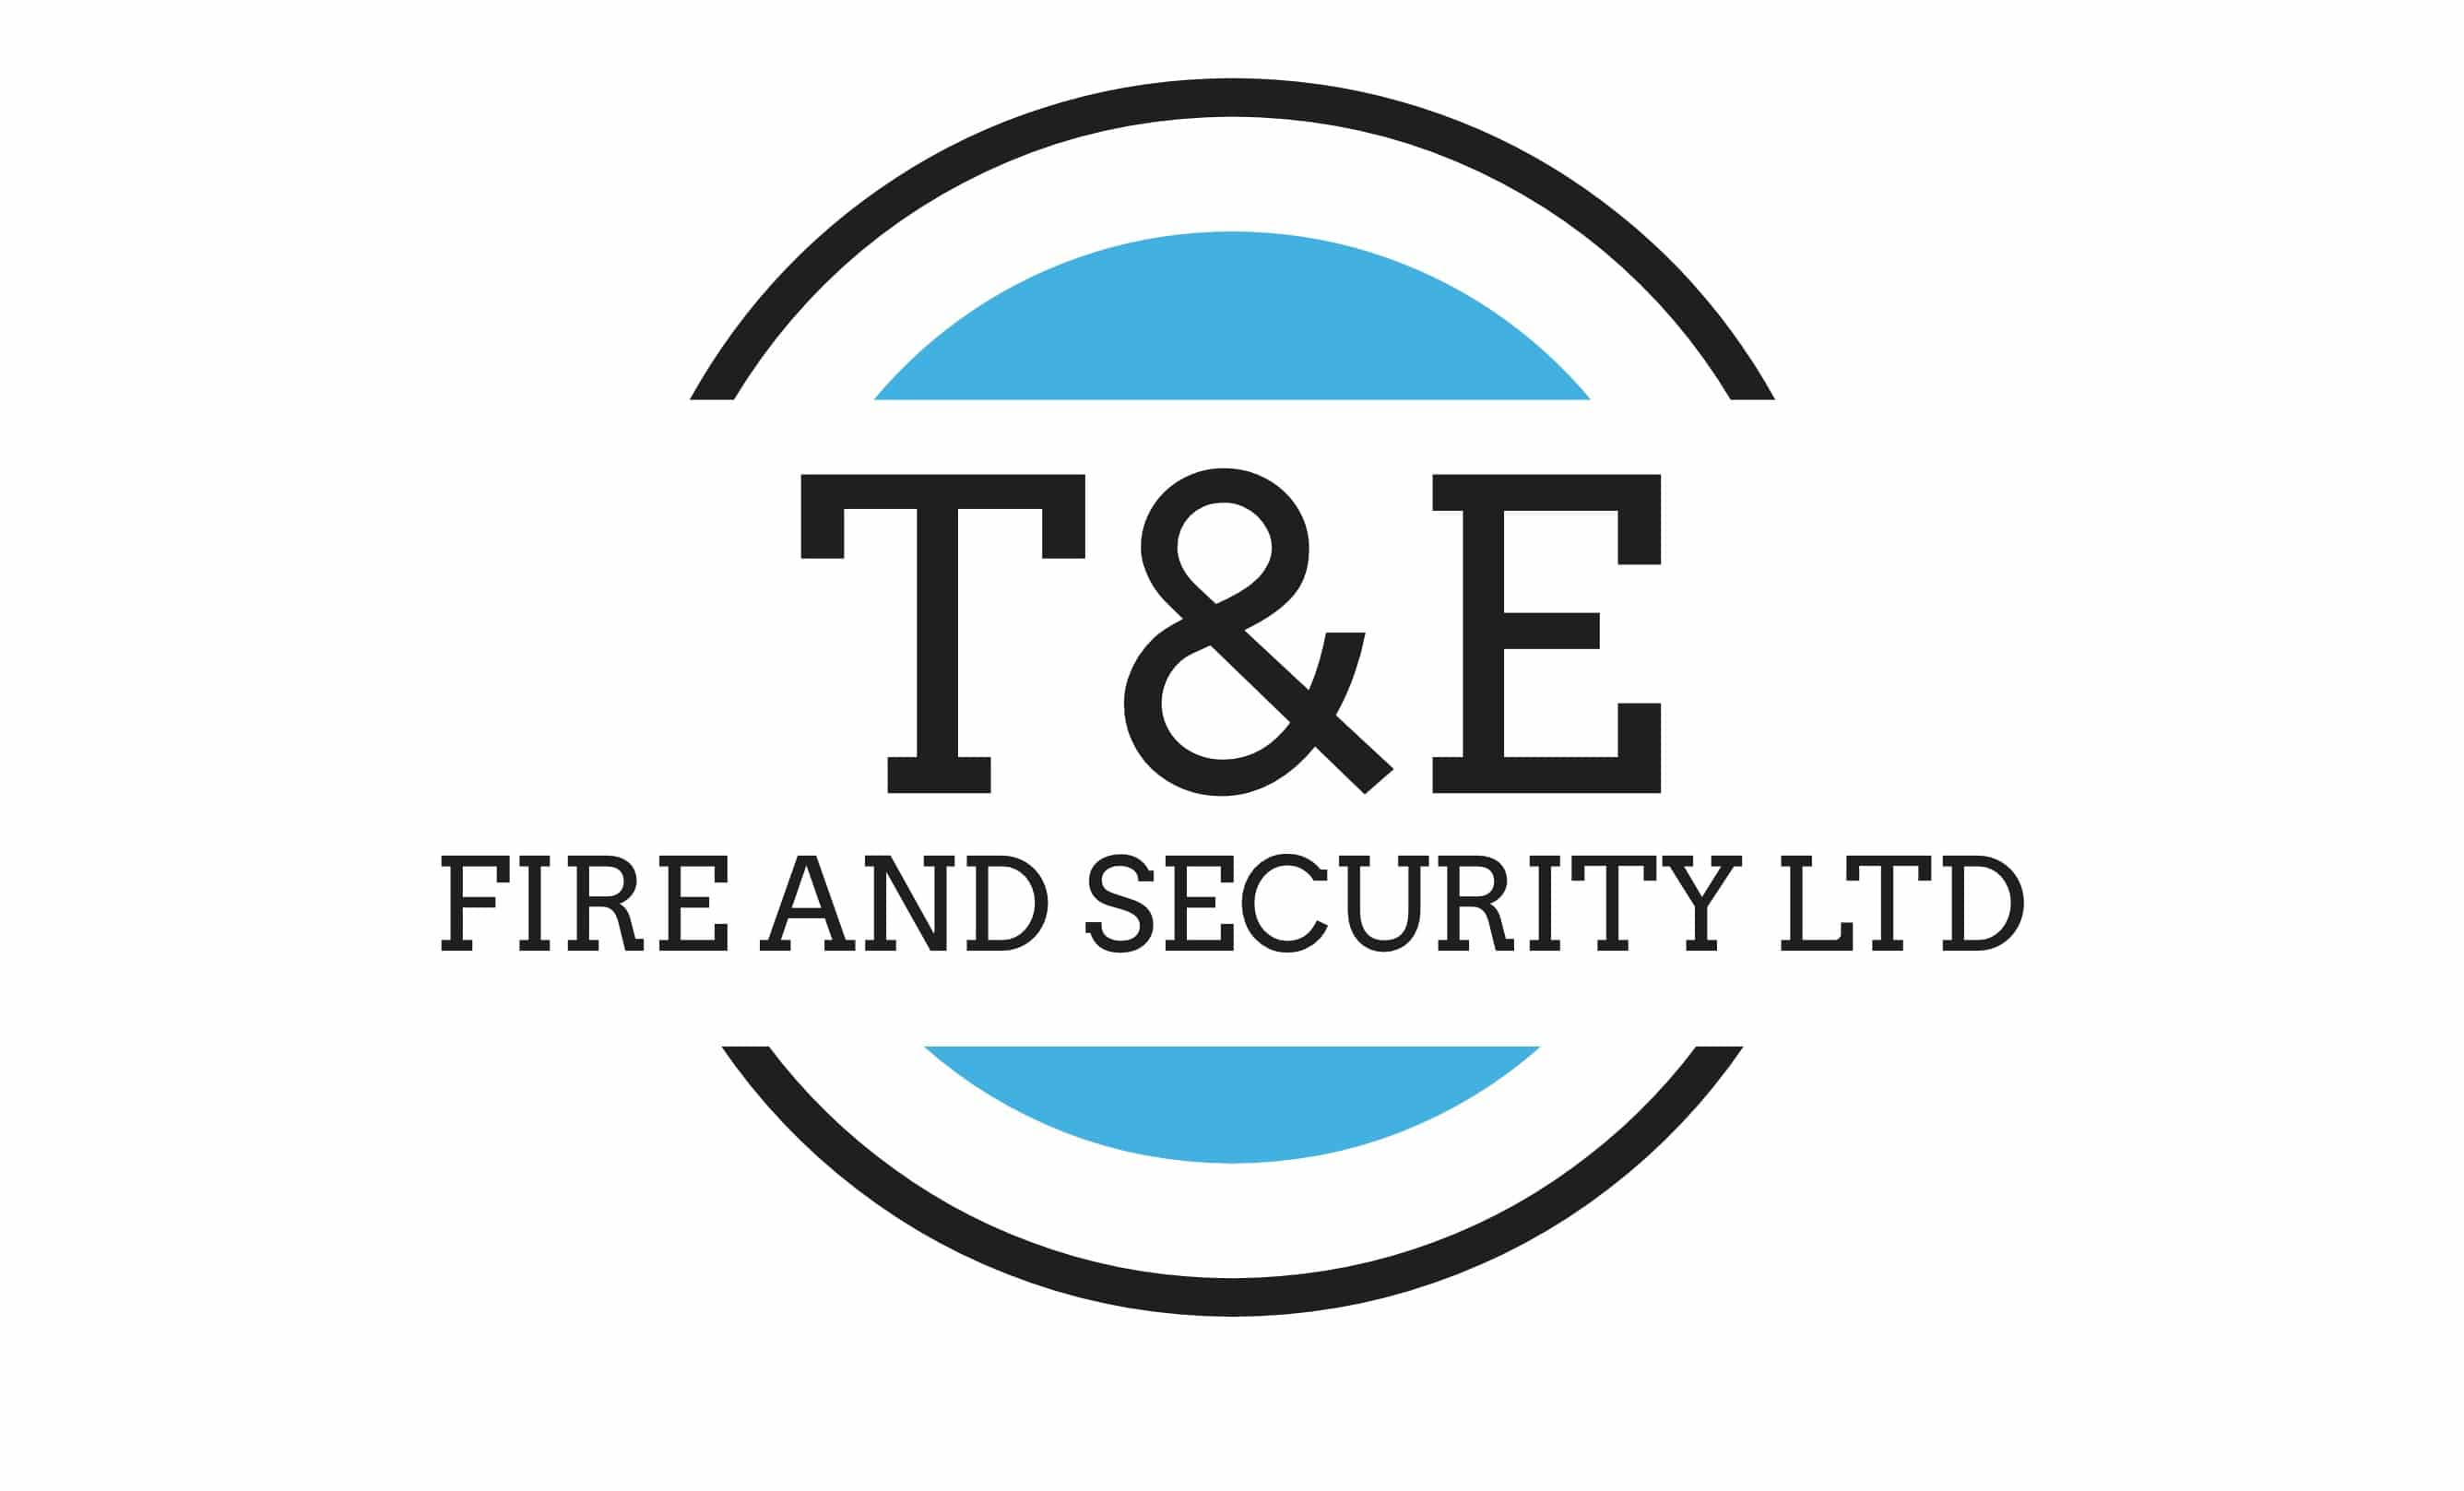 T&E FIRE AND SECURITY